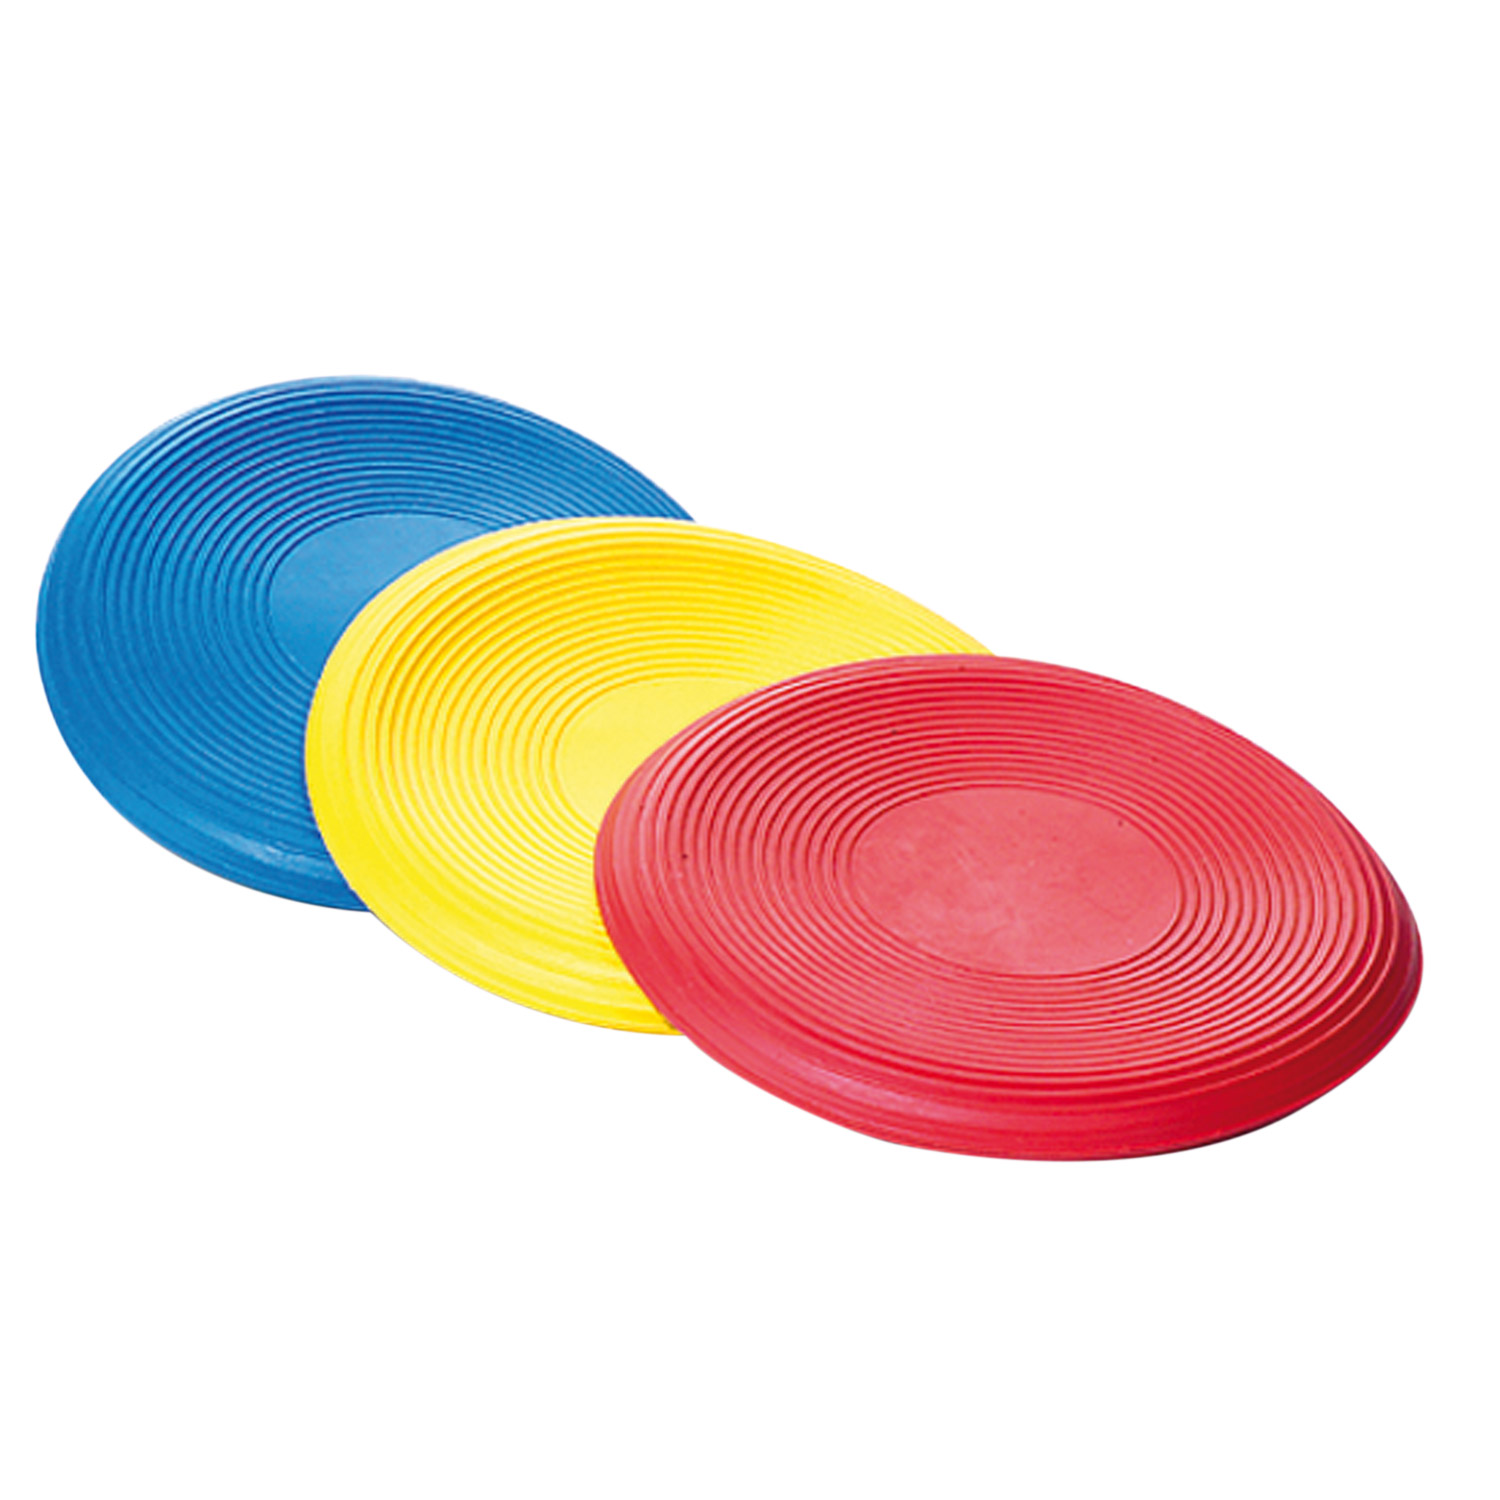 Rubber Throwing Disc